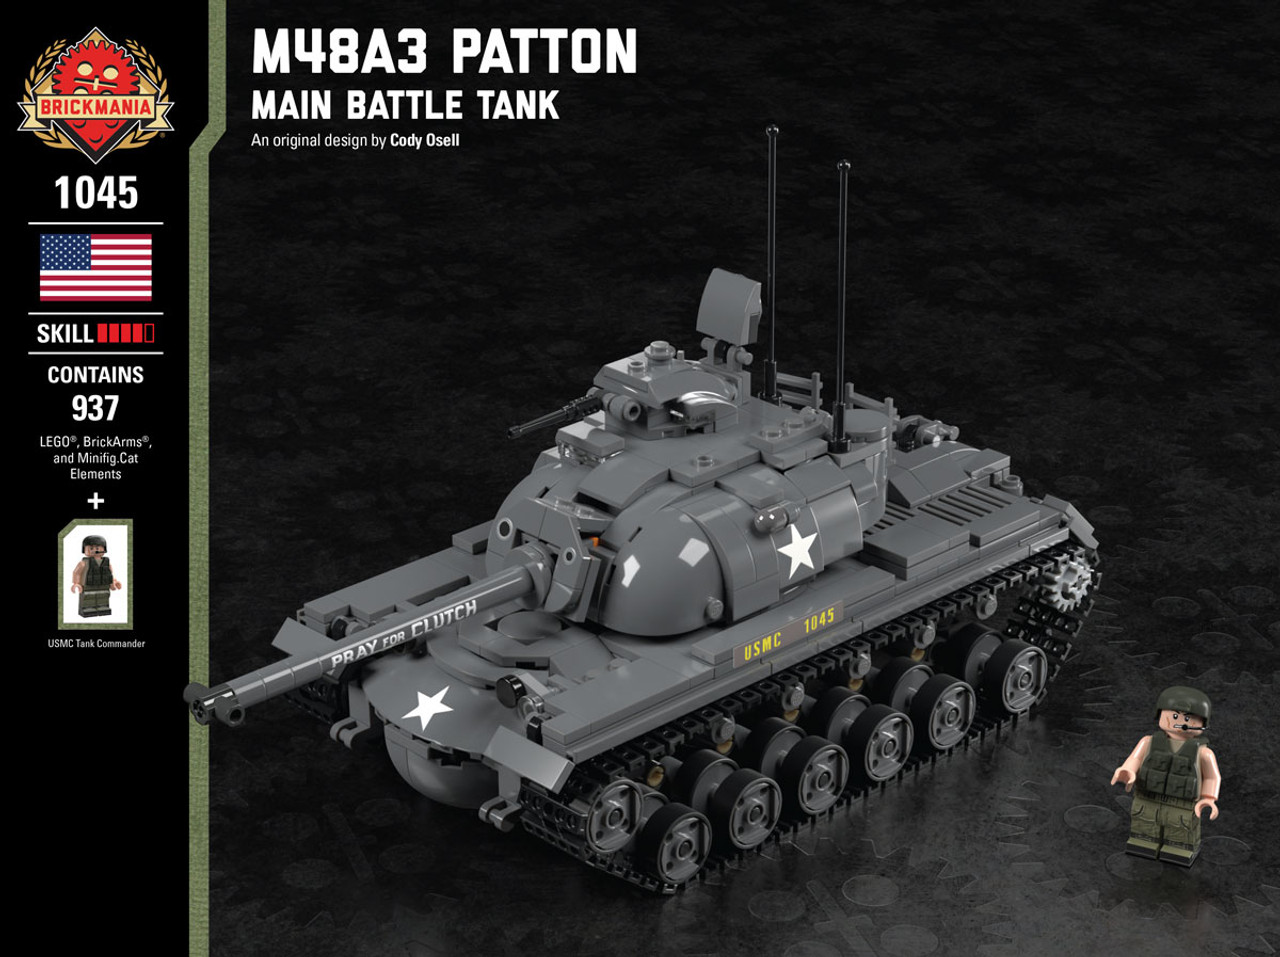 M48A3 Patton - Main Battle Tank